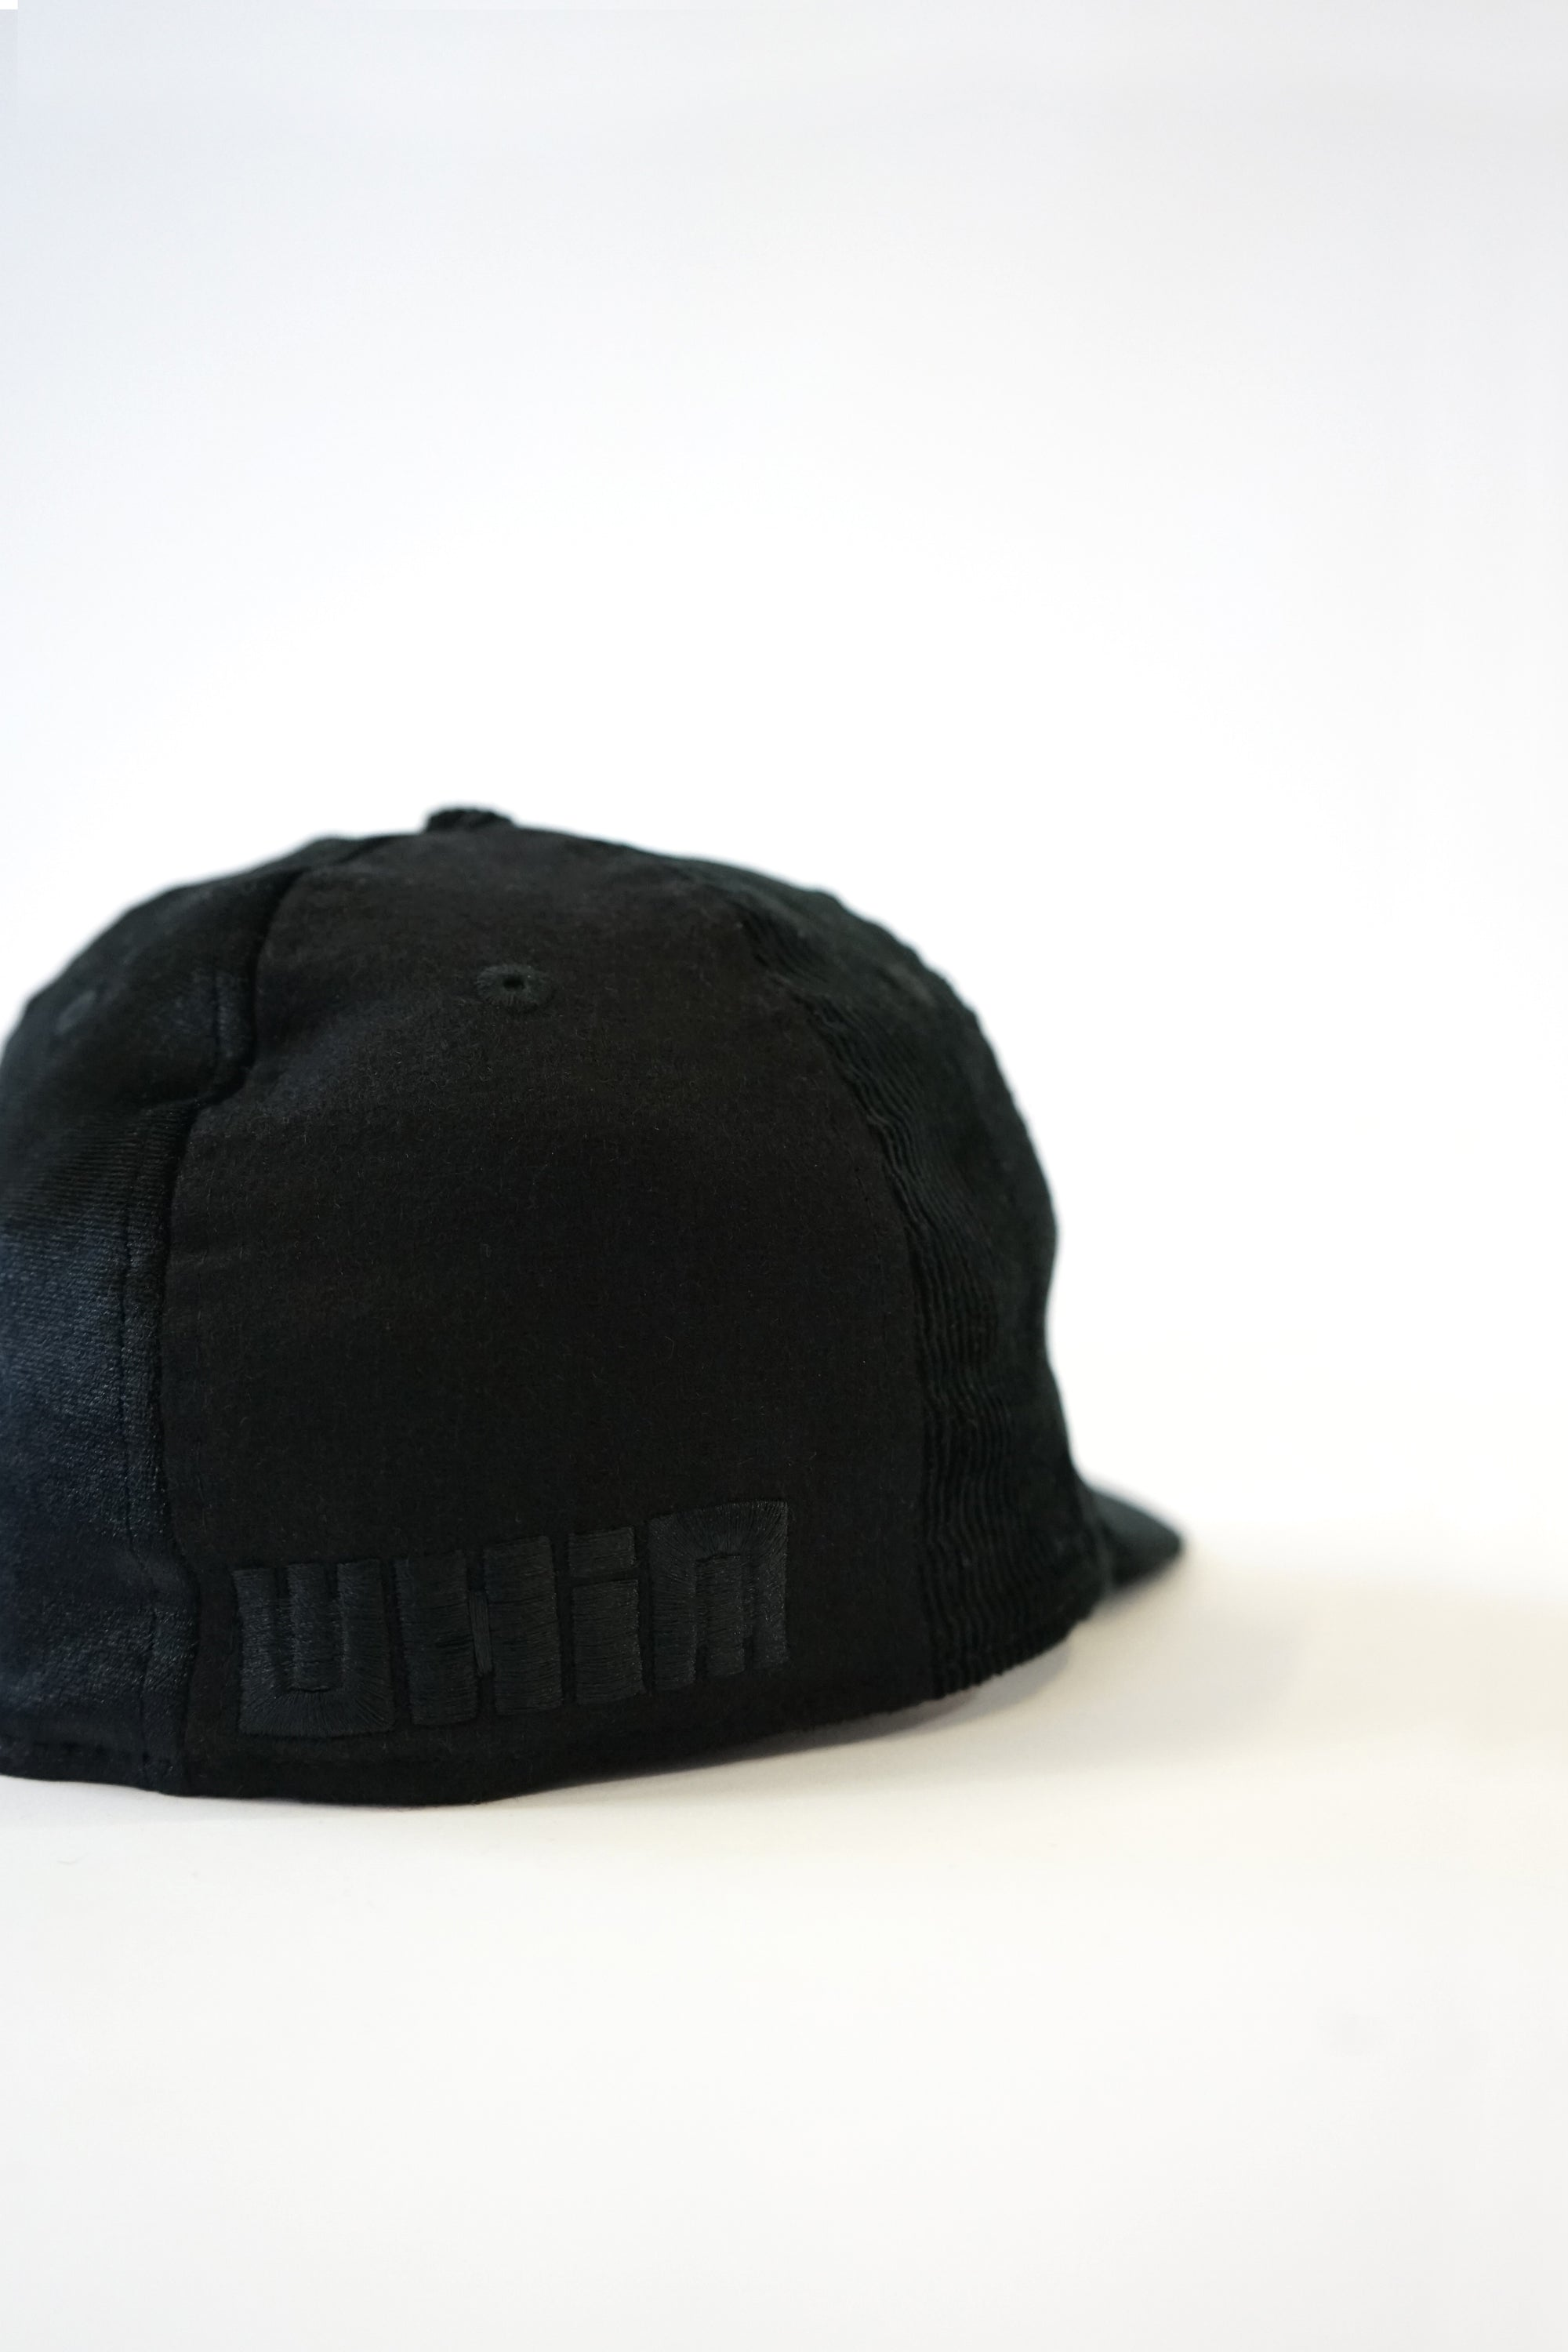 Black Tie New Era Cap